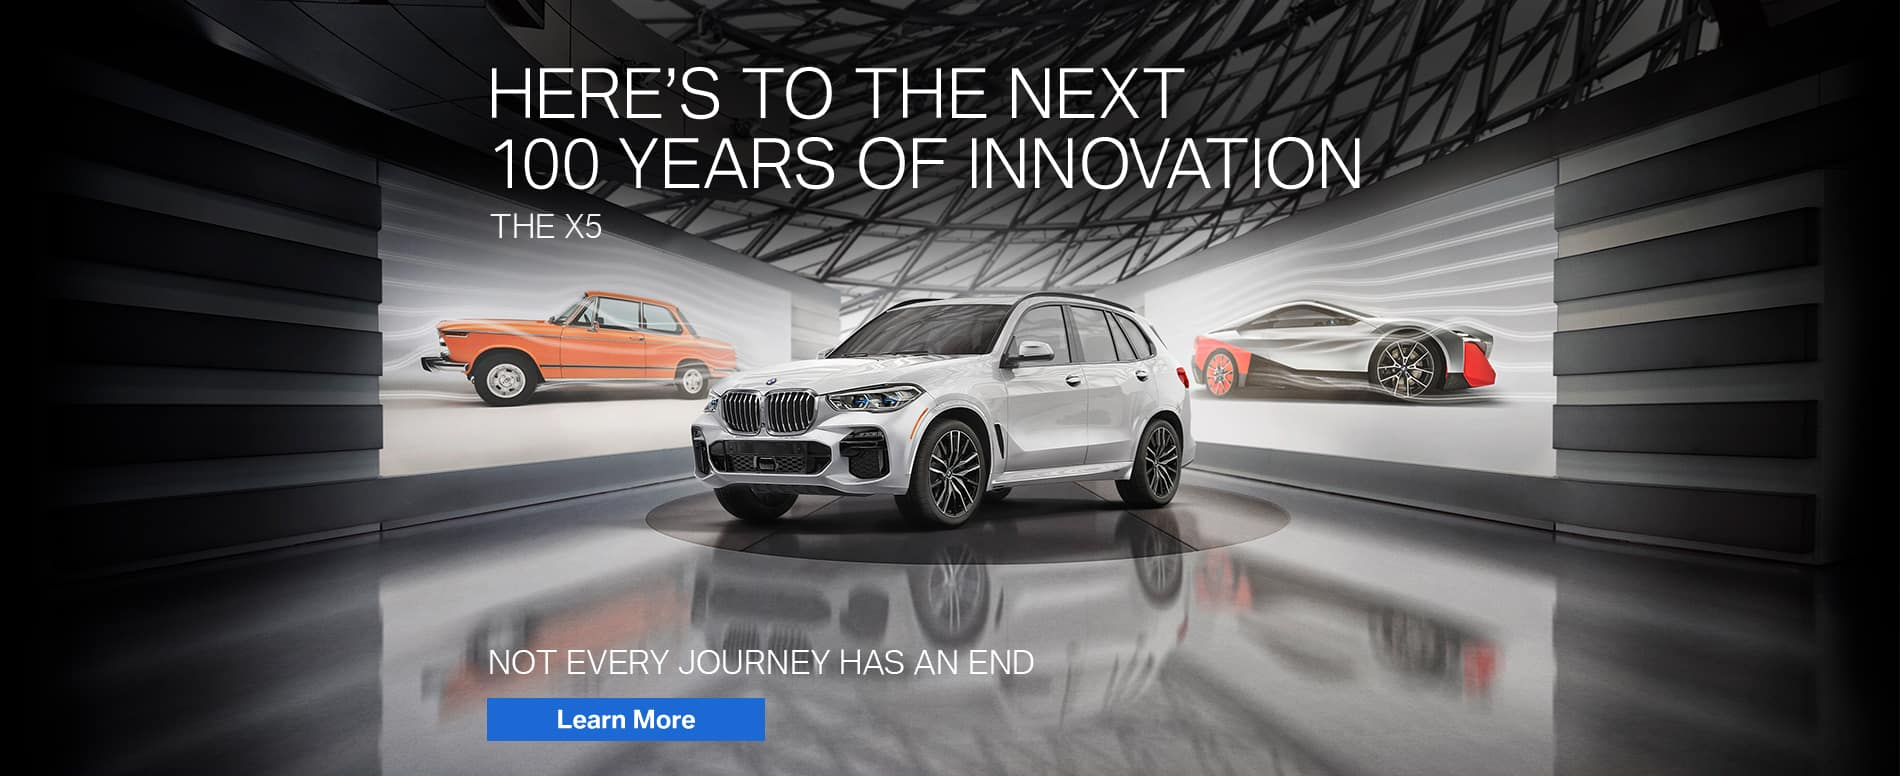 HERE'S TO THE NEXT 100 YEARS OF INNOVATION -X5